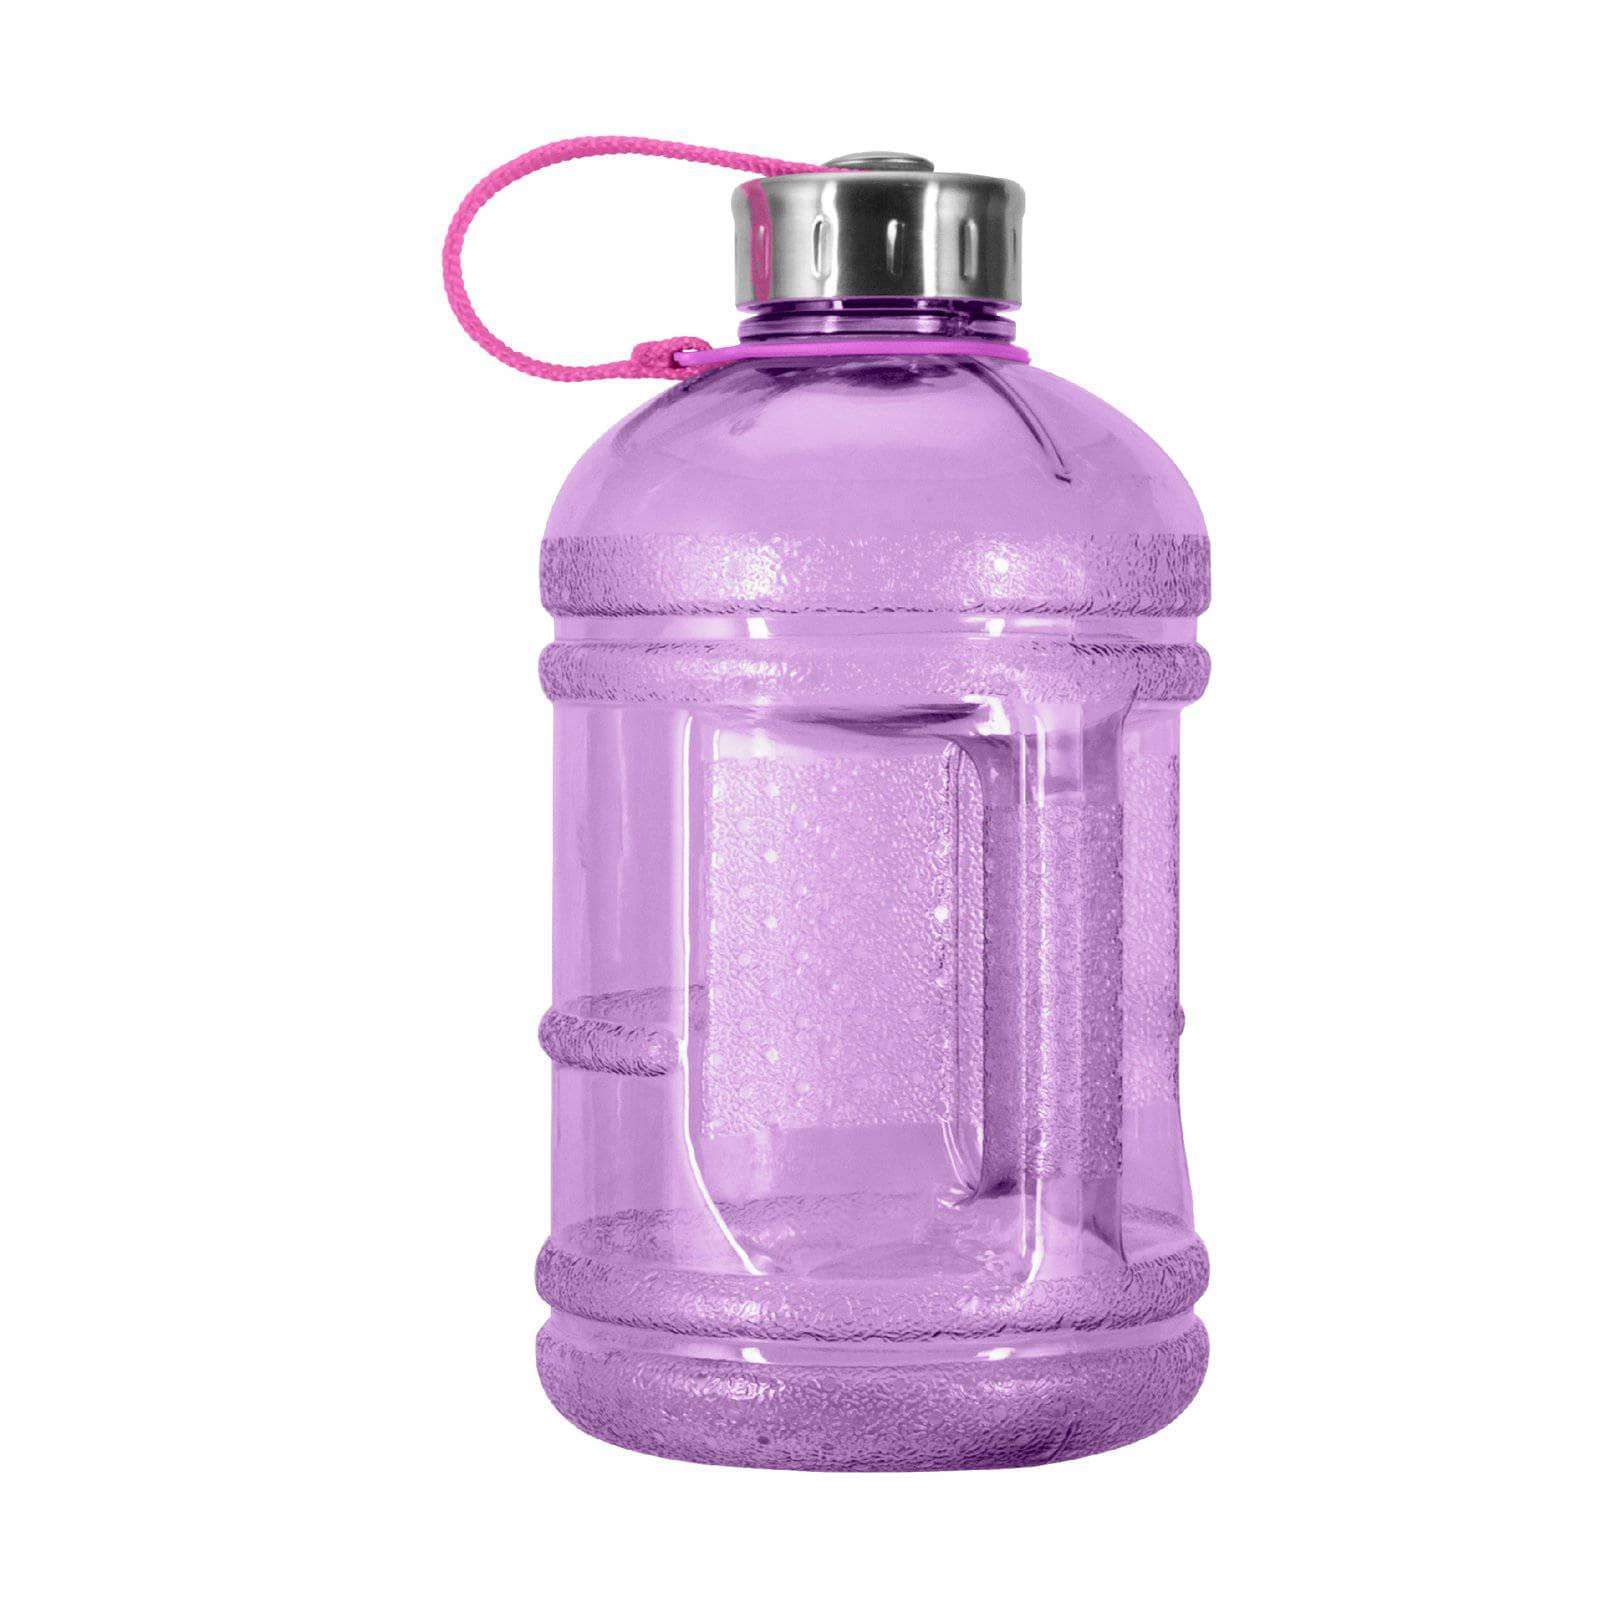 Geo Bottles Bottles Purple 1/2 Gallon BPA FREE Plastic Water Bottle w/ 48mm Steel Cap